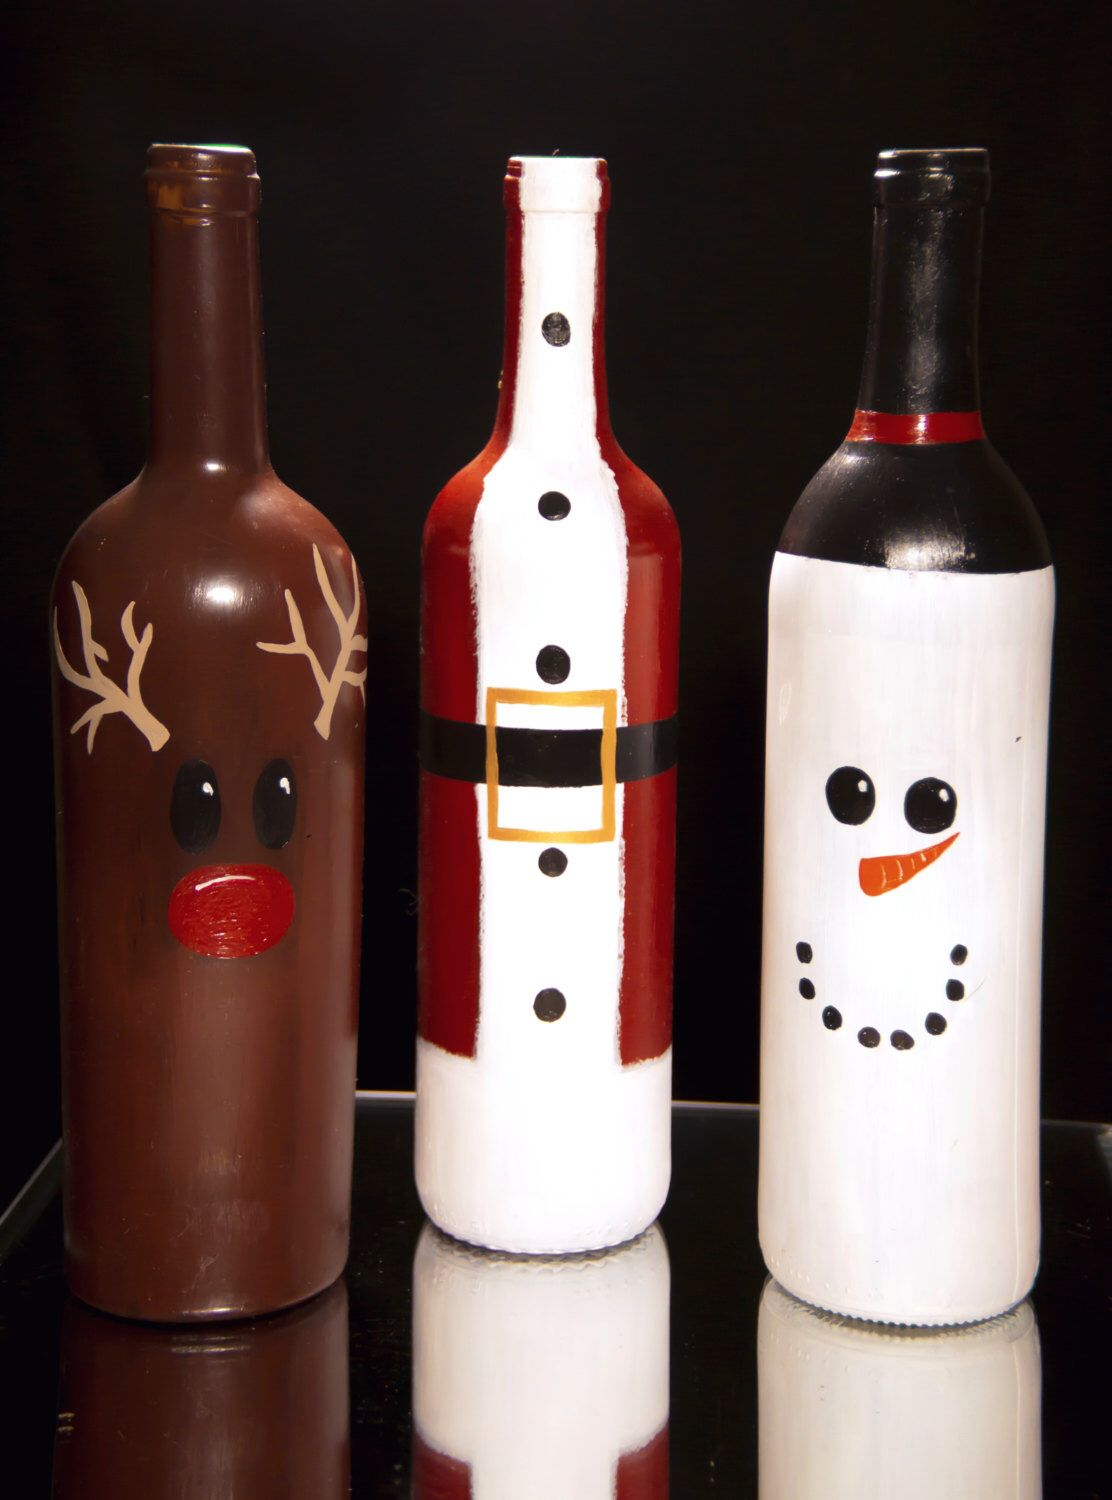 Christmas Wine Bottle Decorations Diy Etsy Bottles Decoration Diy Wine Bottle Christmas Decorations Bottle Crafts